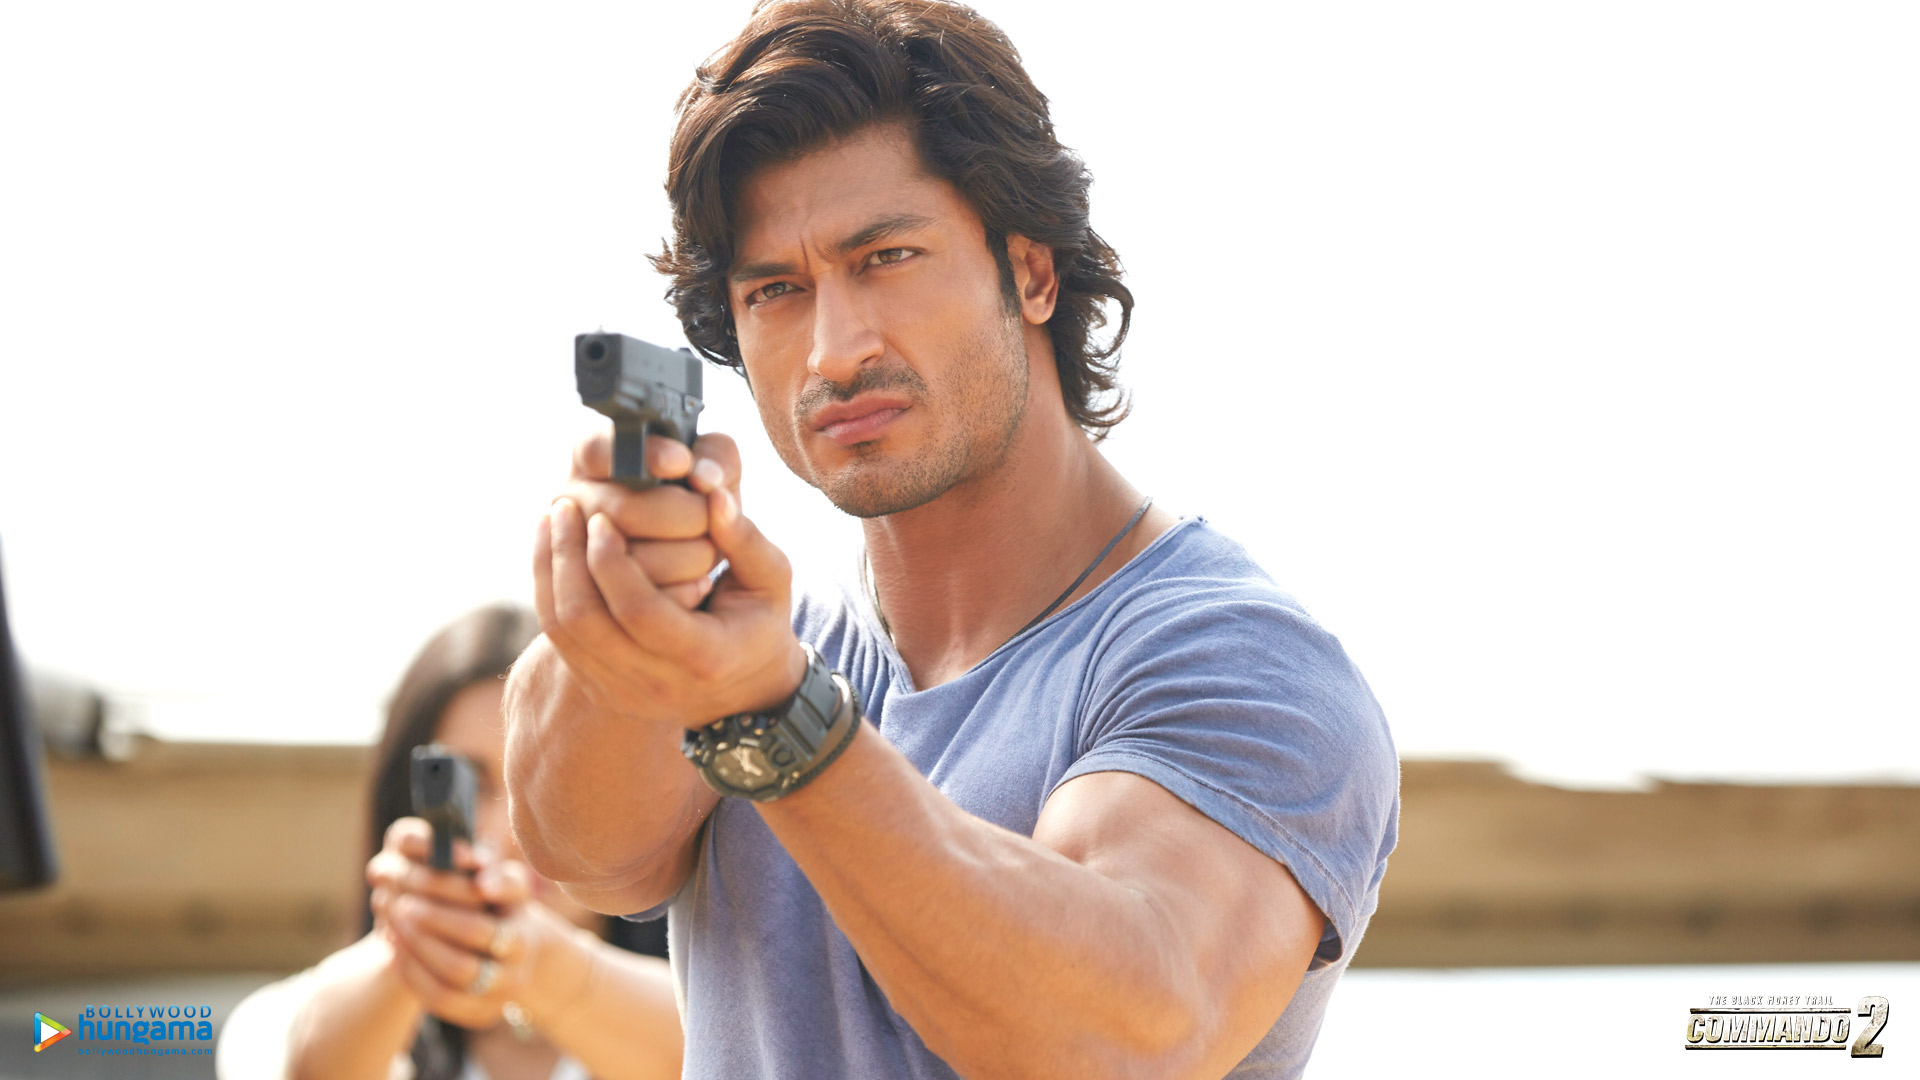 Commando 2 Wallpaper: Commando-2-2-10 - Bollywood